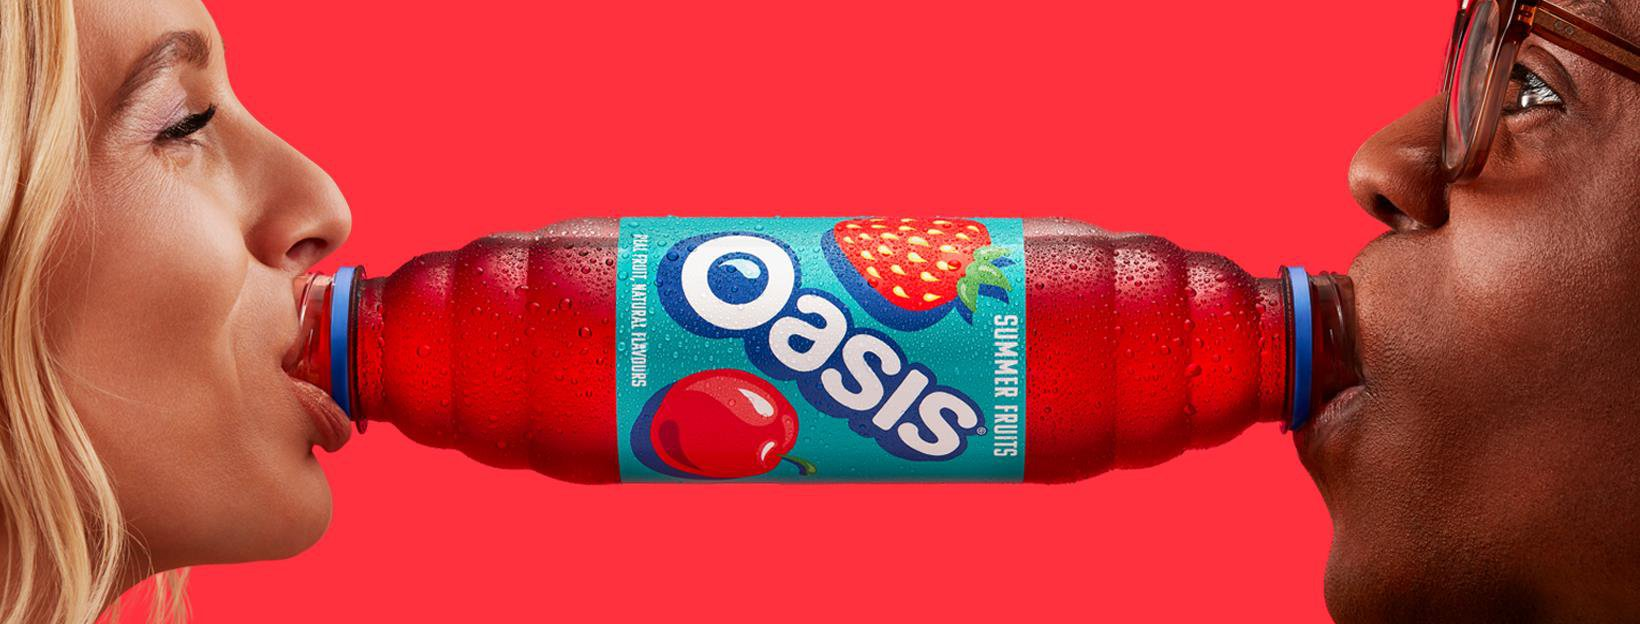 Oasis's new advert for a double-ended bottle looks a bit rude